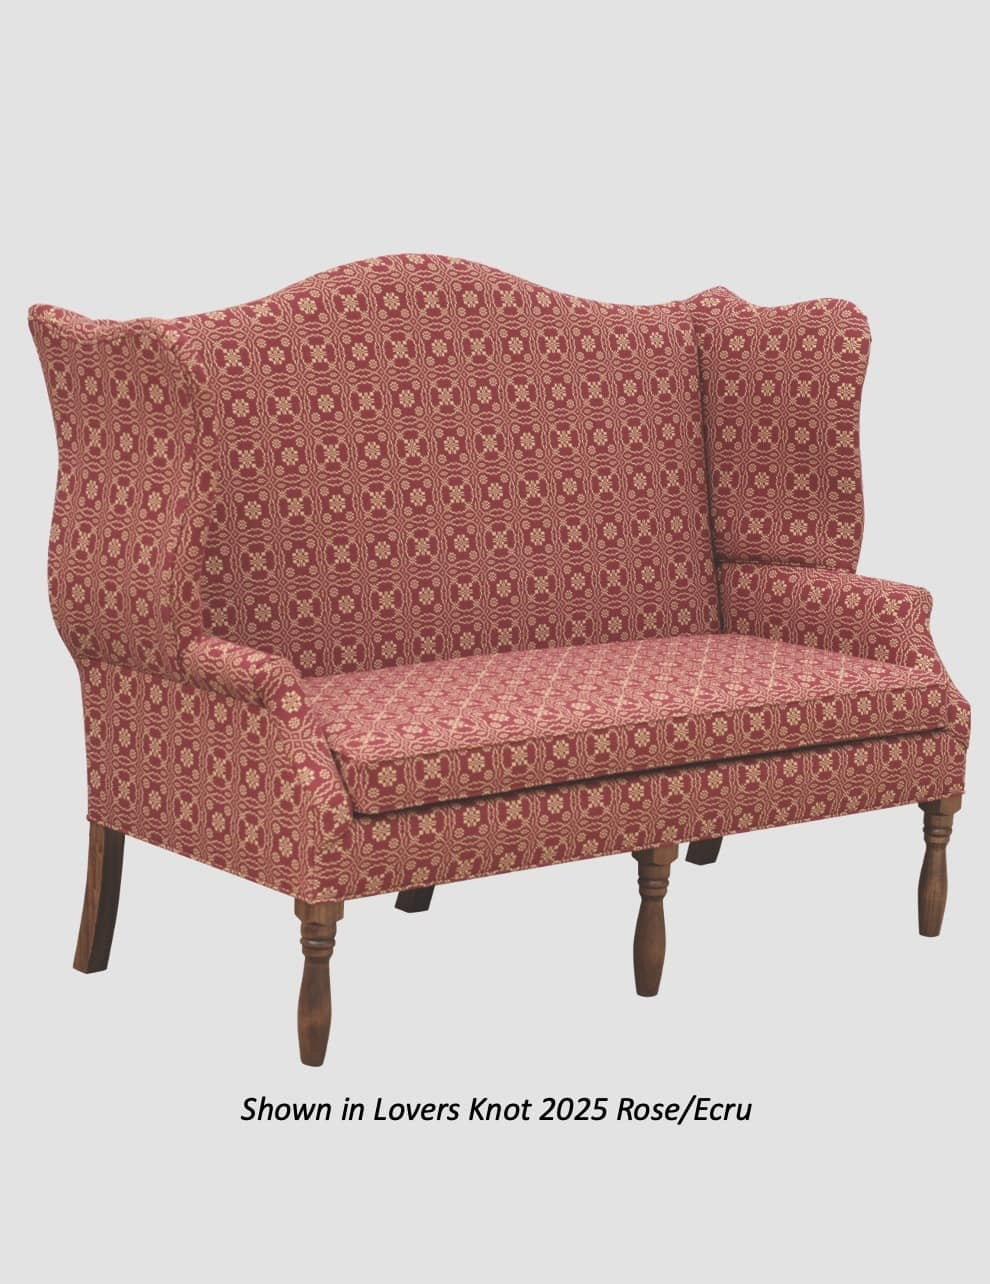 Town & Country Furnishings Grand Northampton Sofa from the American Primitive Collection